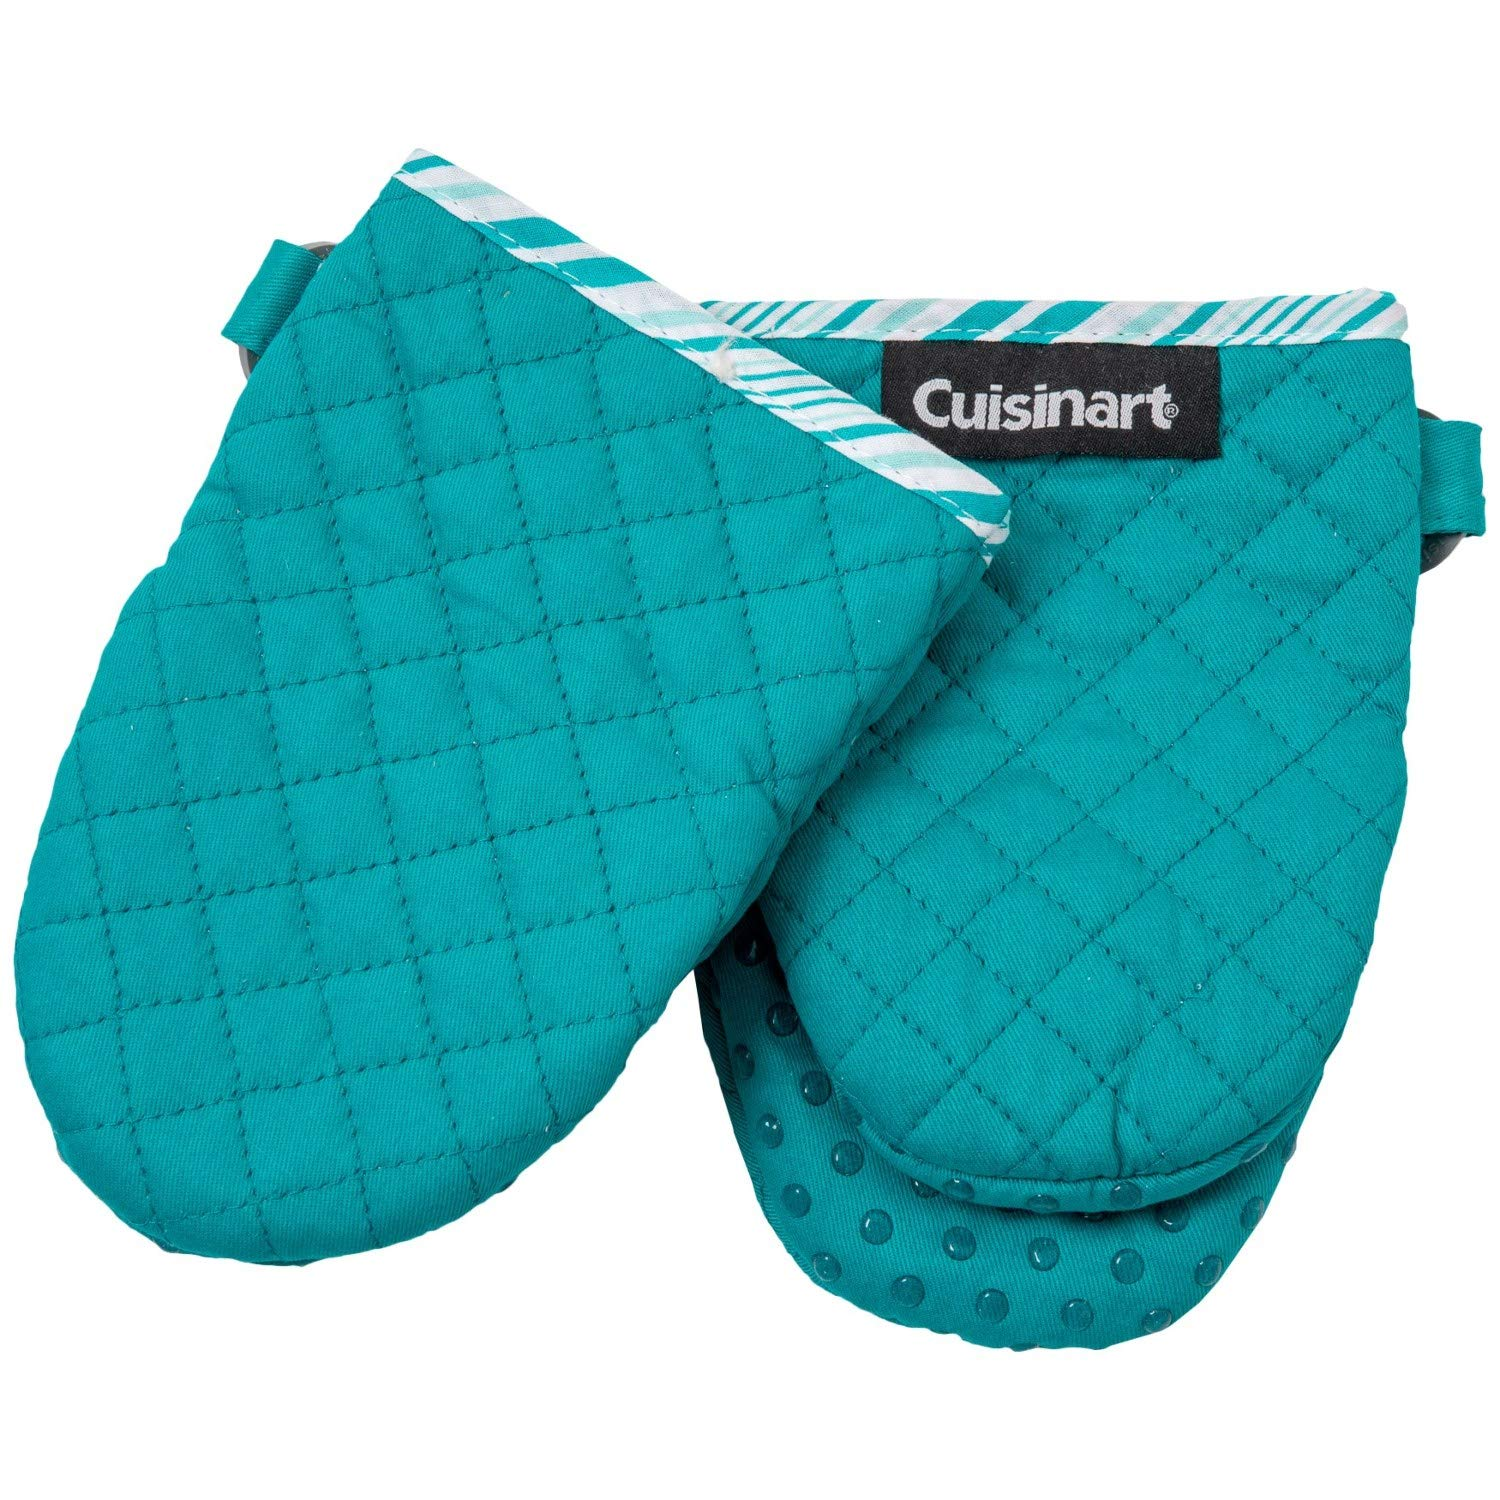 Cuisinart Lake Blue Oversized Mini Oven Mitts with Silicone Dots - 2-Pack